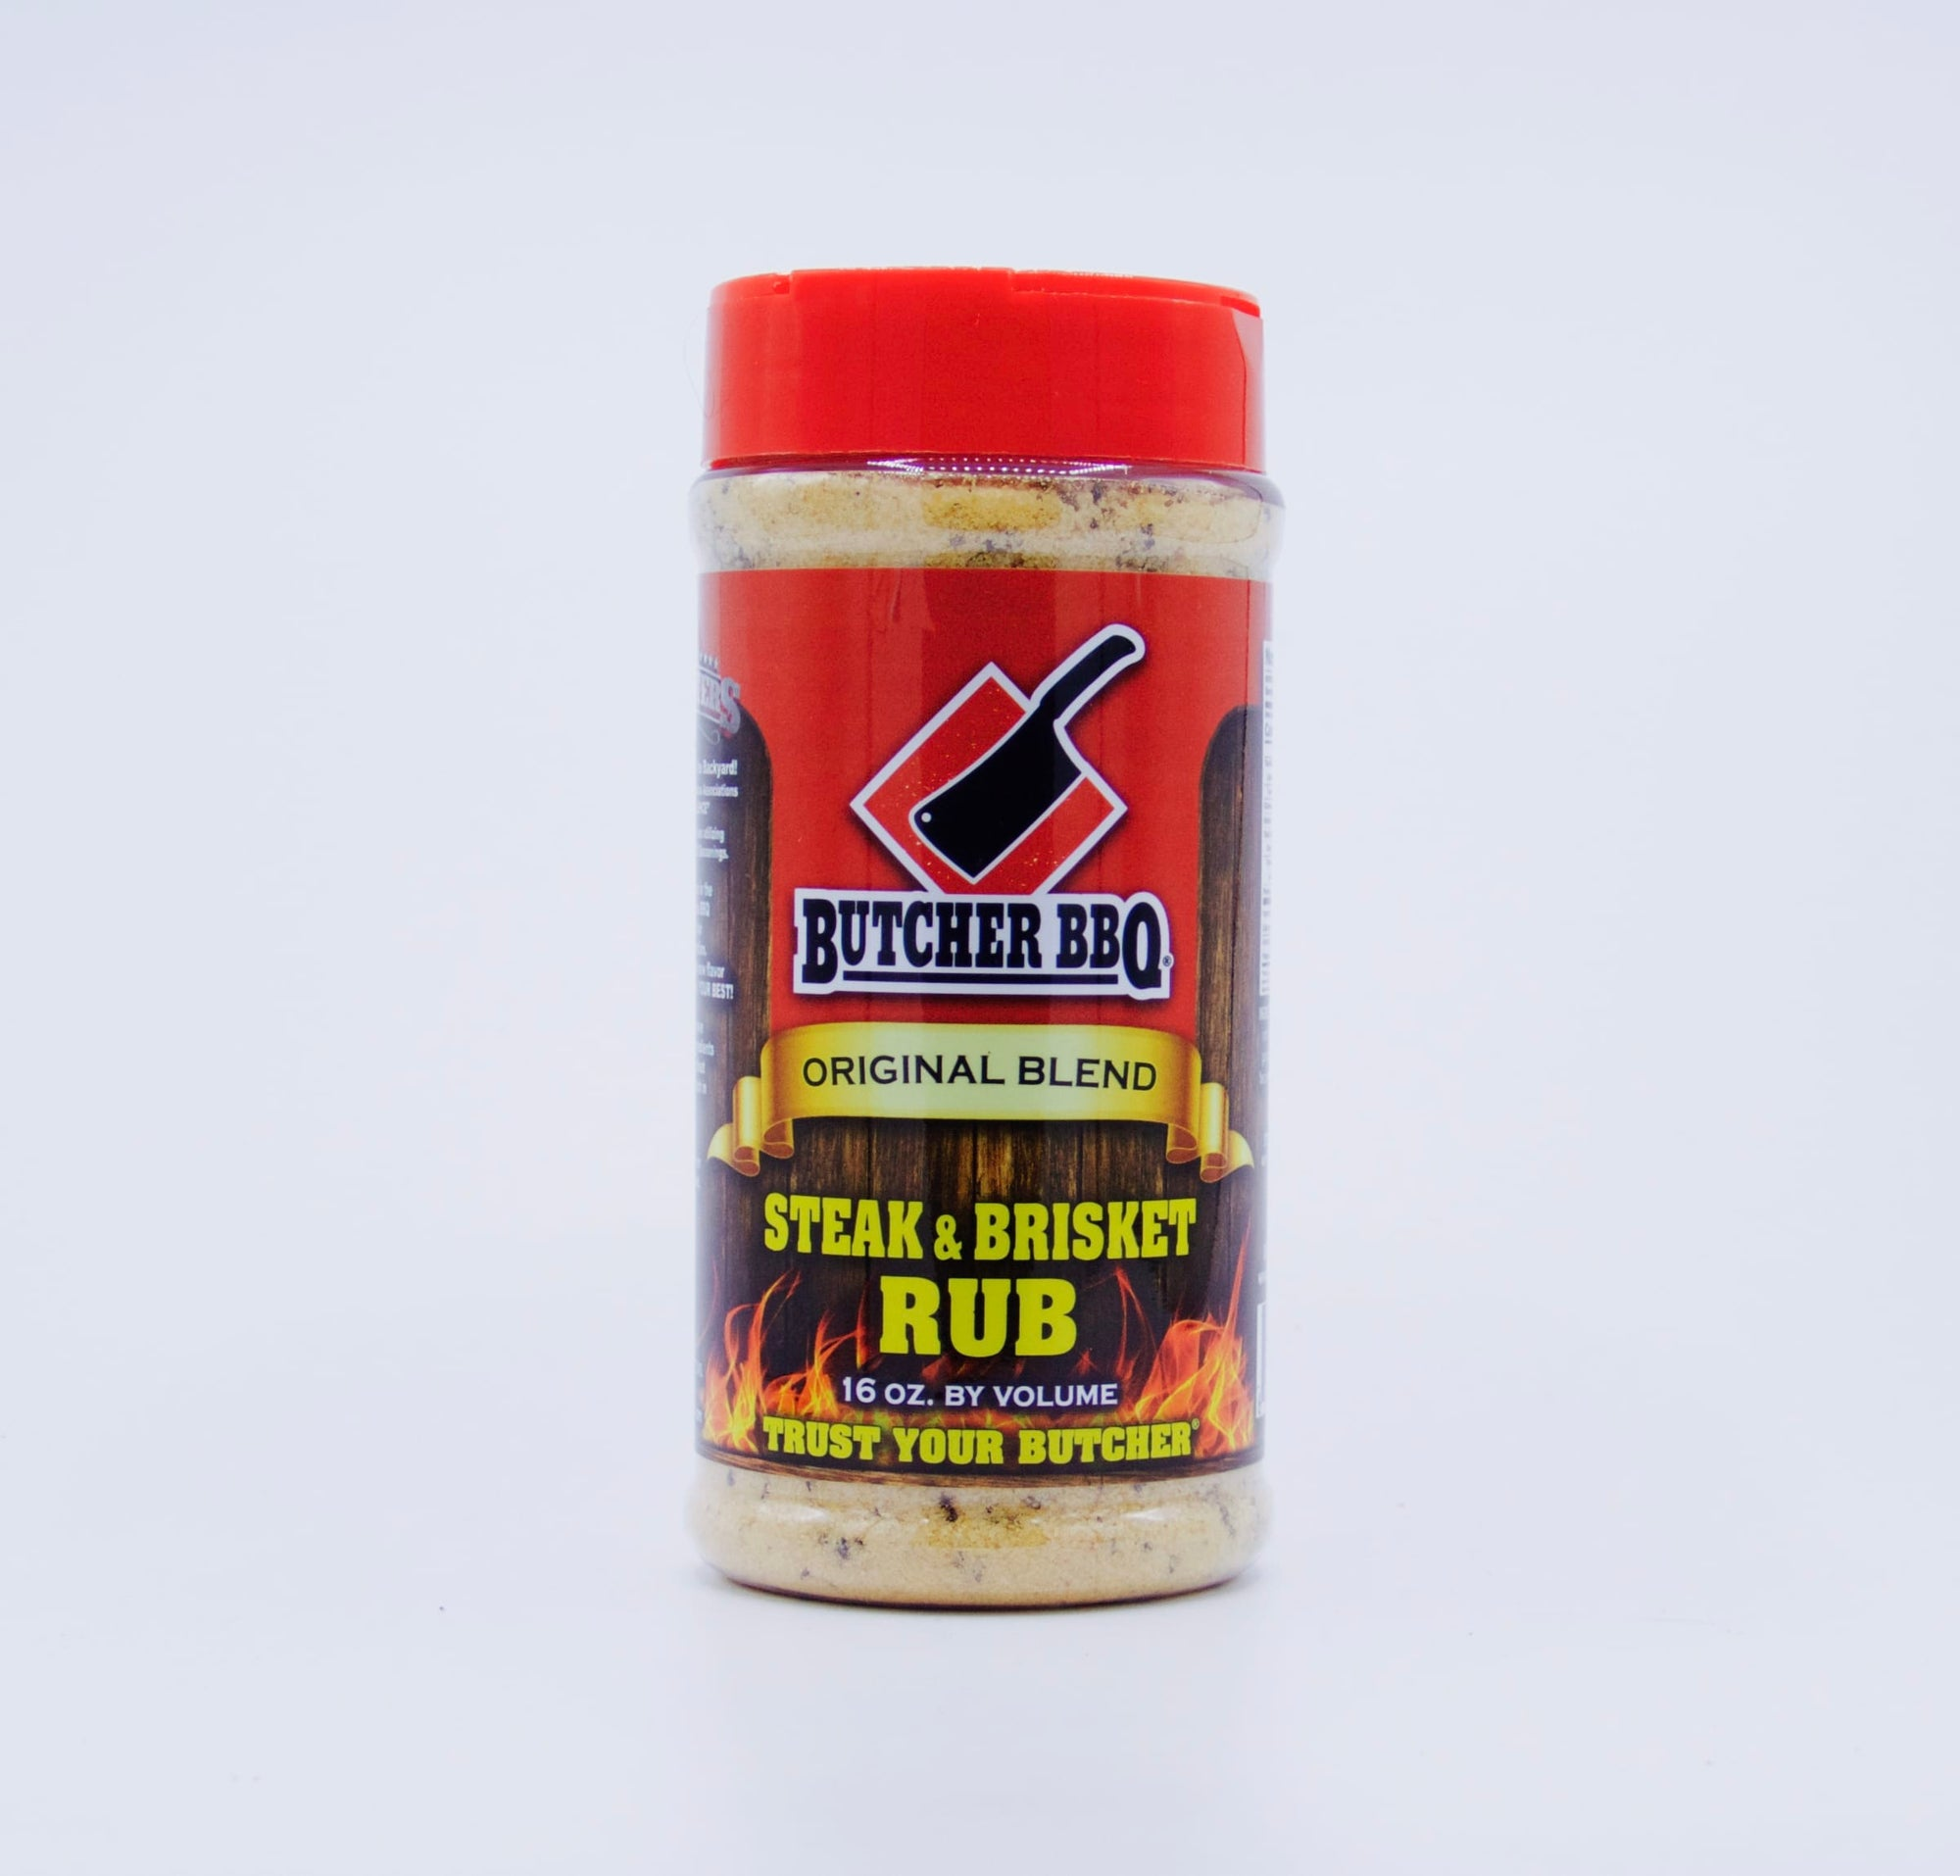 Butcher BBQ Steak & Brisket Rub - 16oz